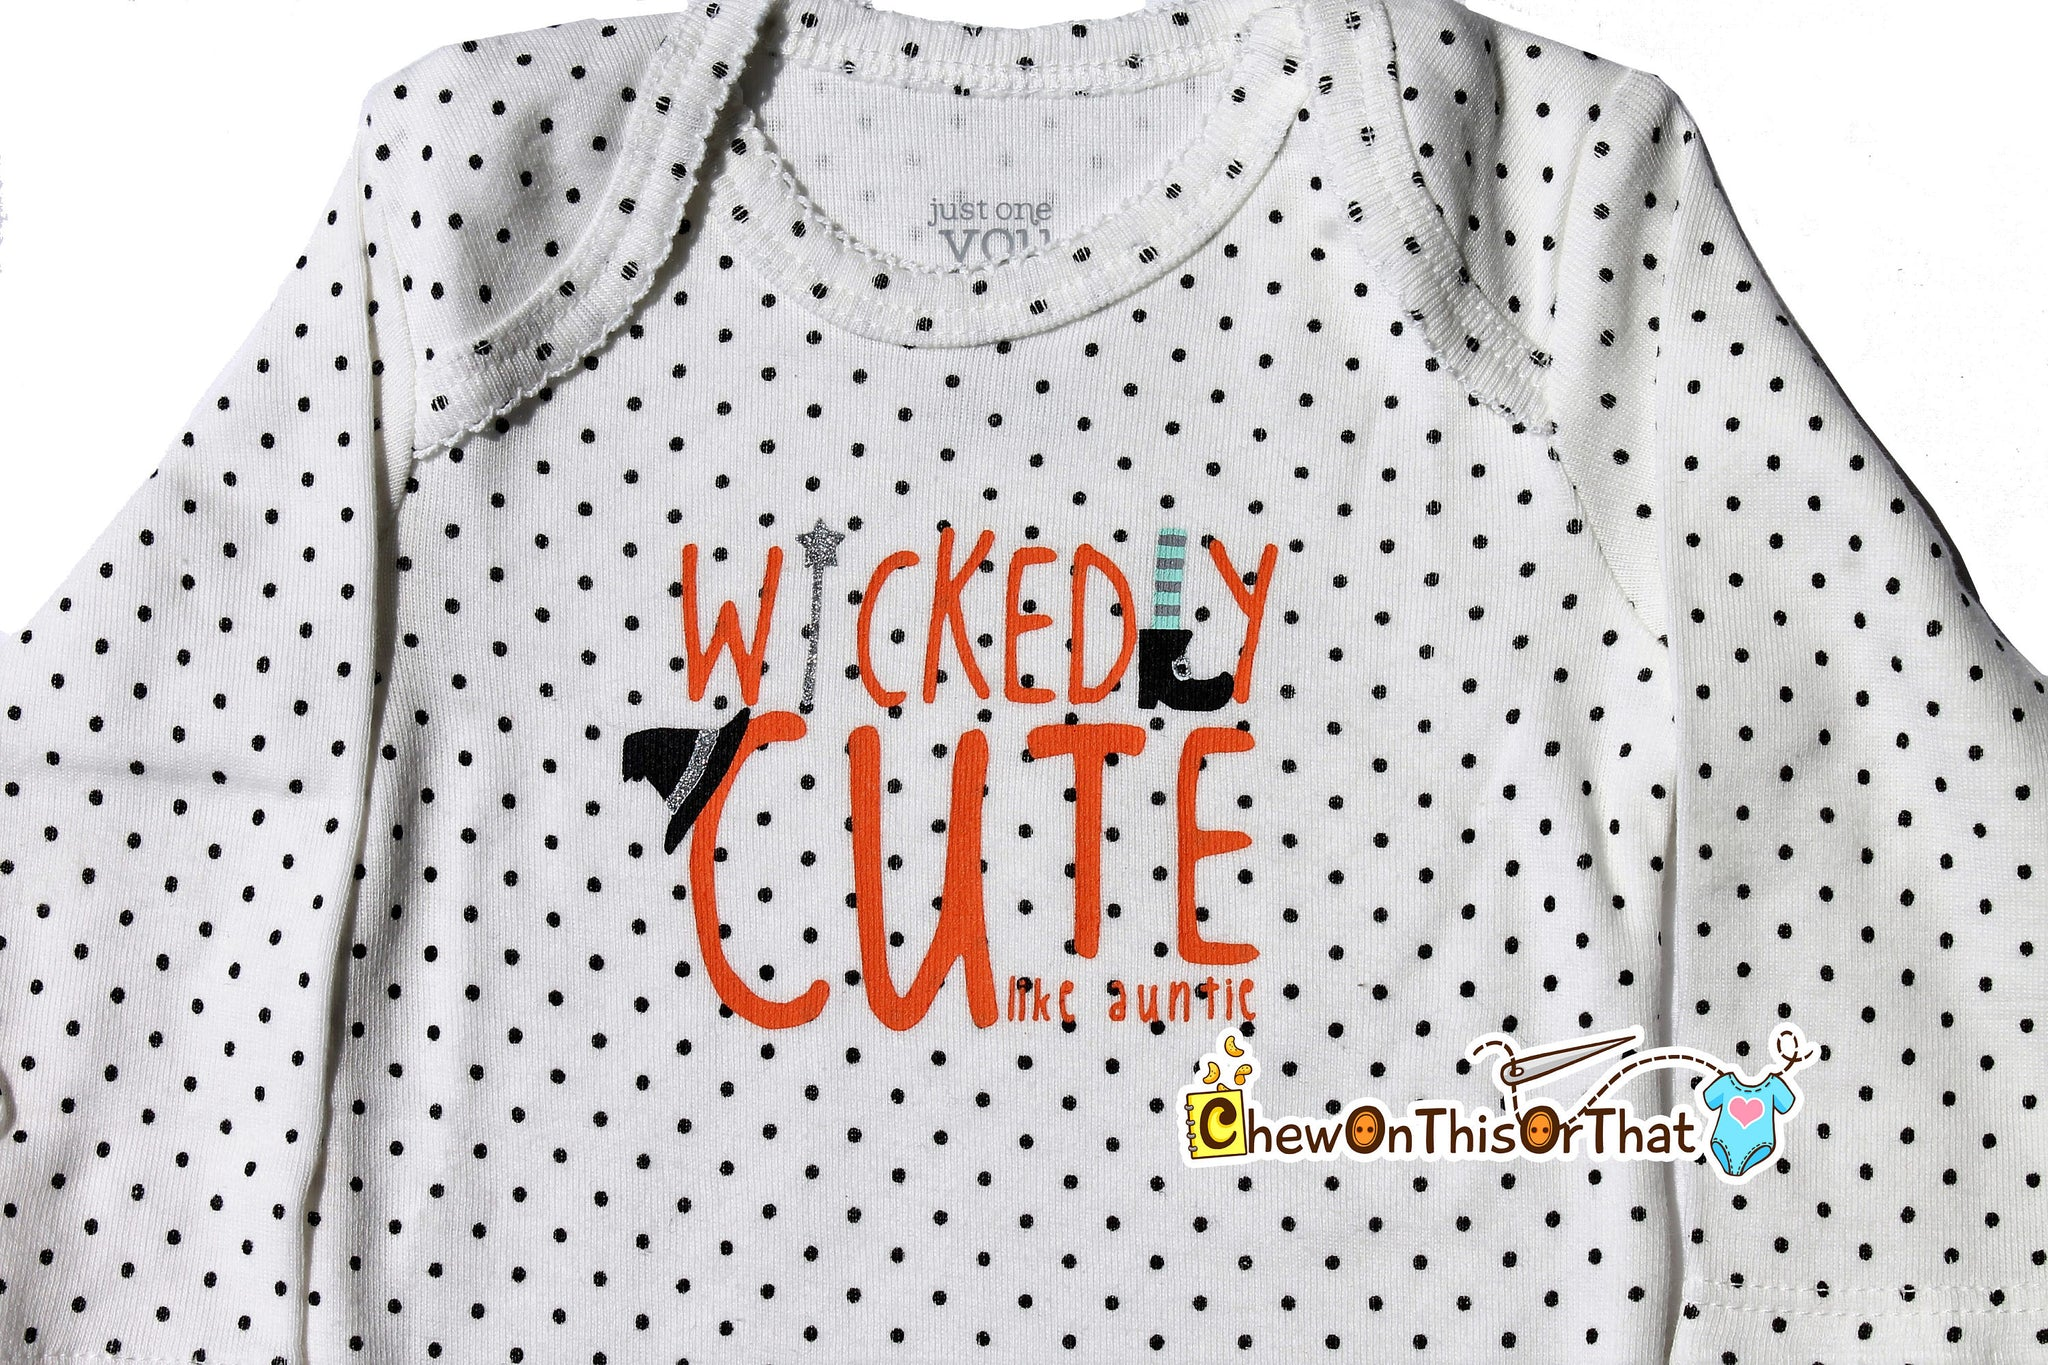 b911aafd0 ... Wickedly Cute Like My Auntie Baby's First Halloween Statement Onesie  Costume - Auntie and Niece Personalized